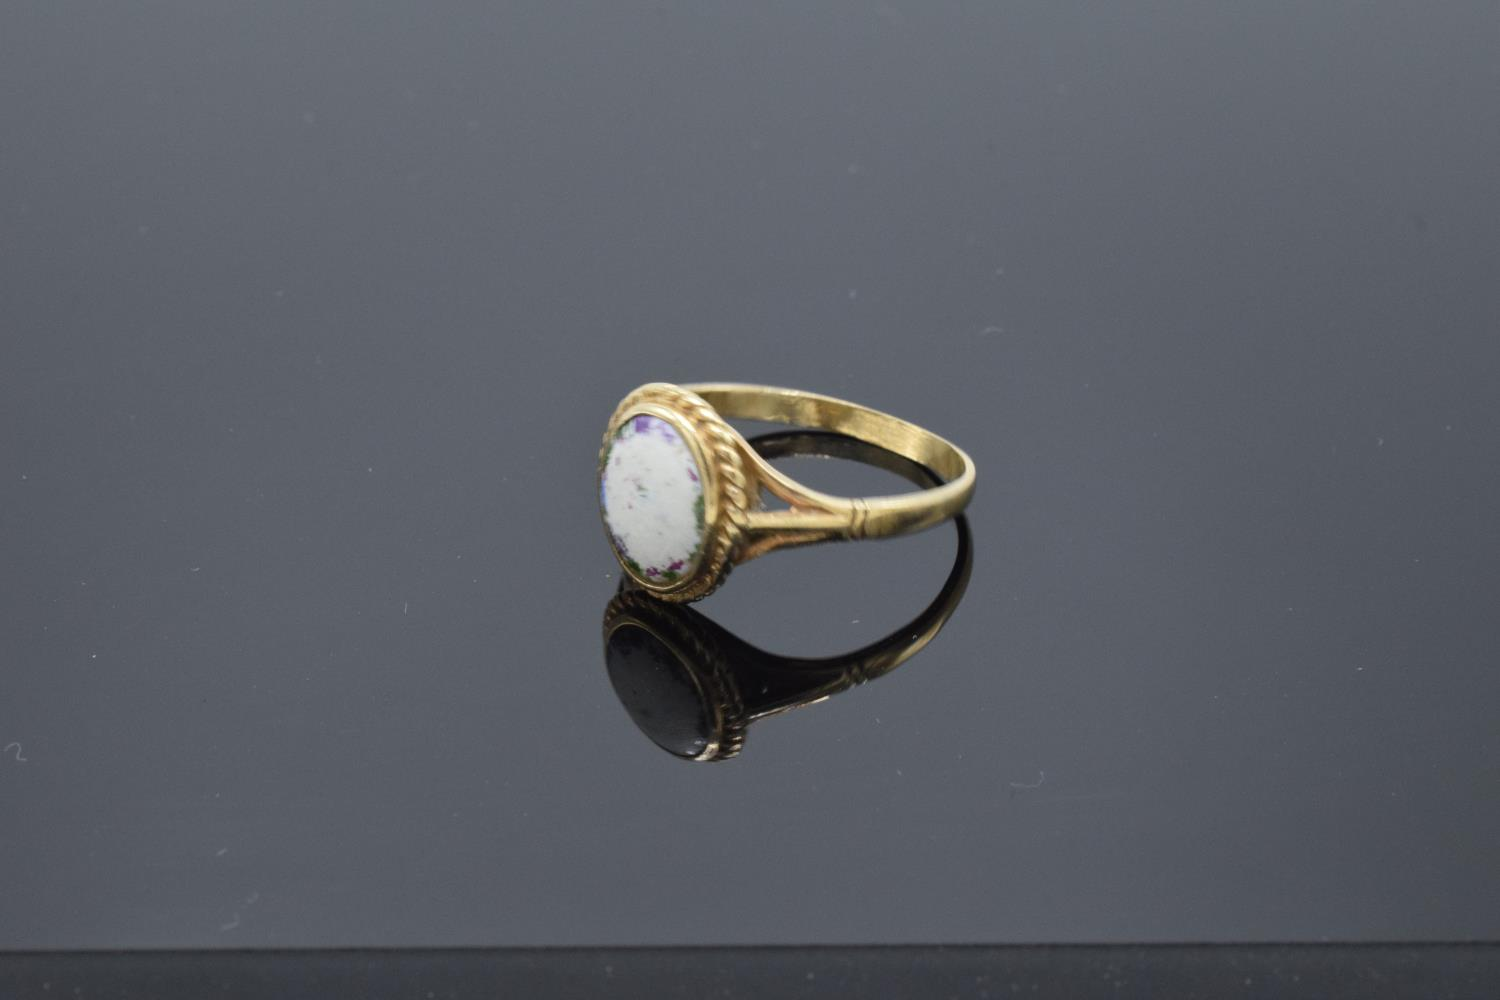 9ct gold ring set with a oval stone. 2.5 grams gross weight. UK size S. Full hallmarks. - Image 2 of 3